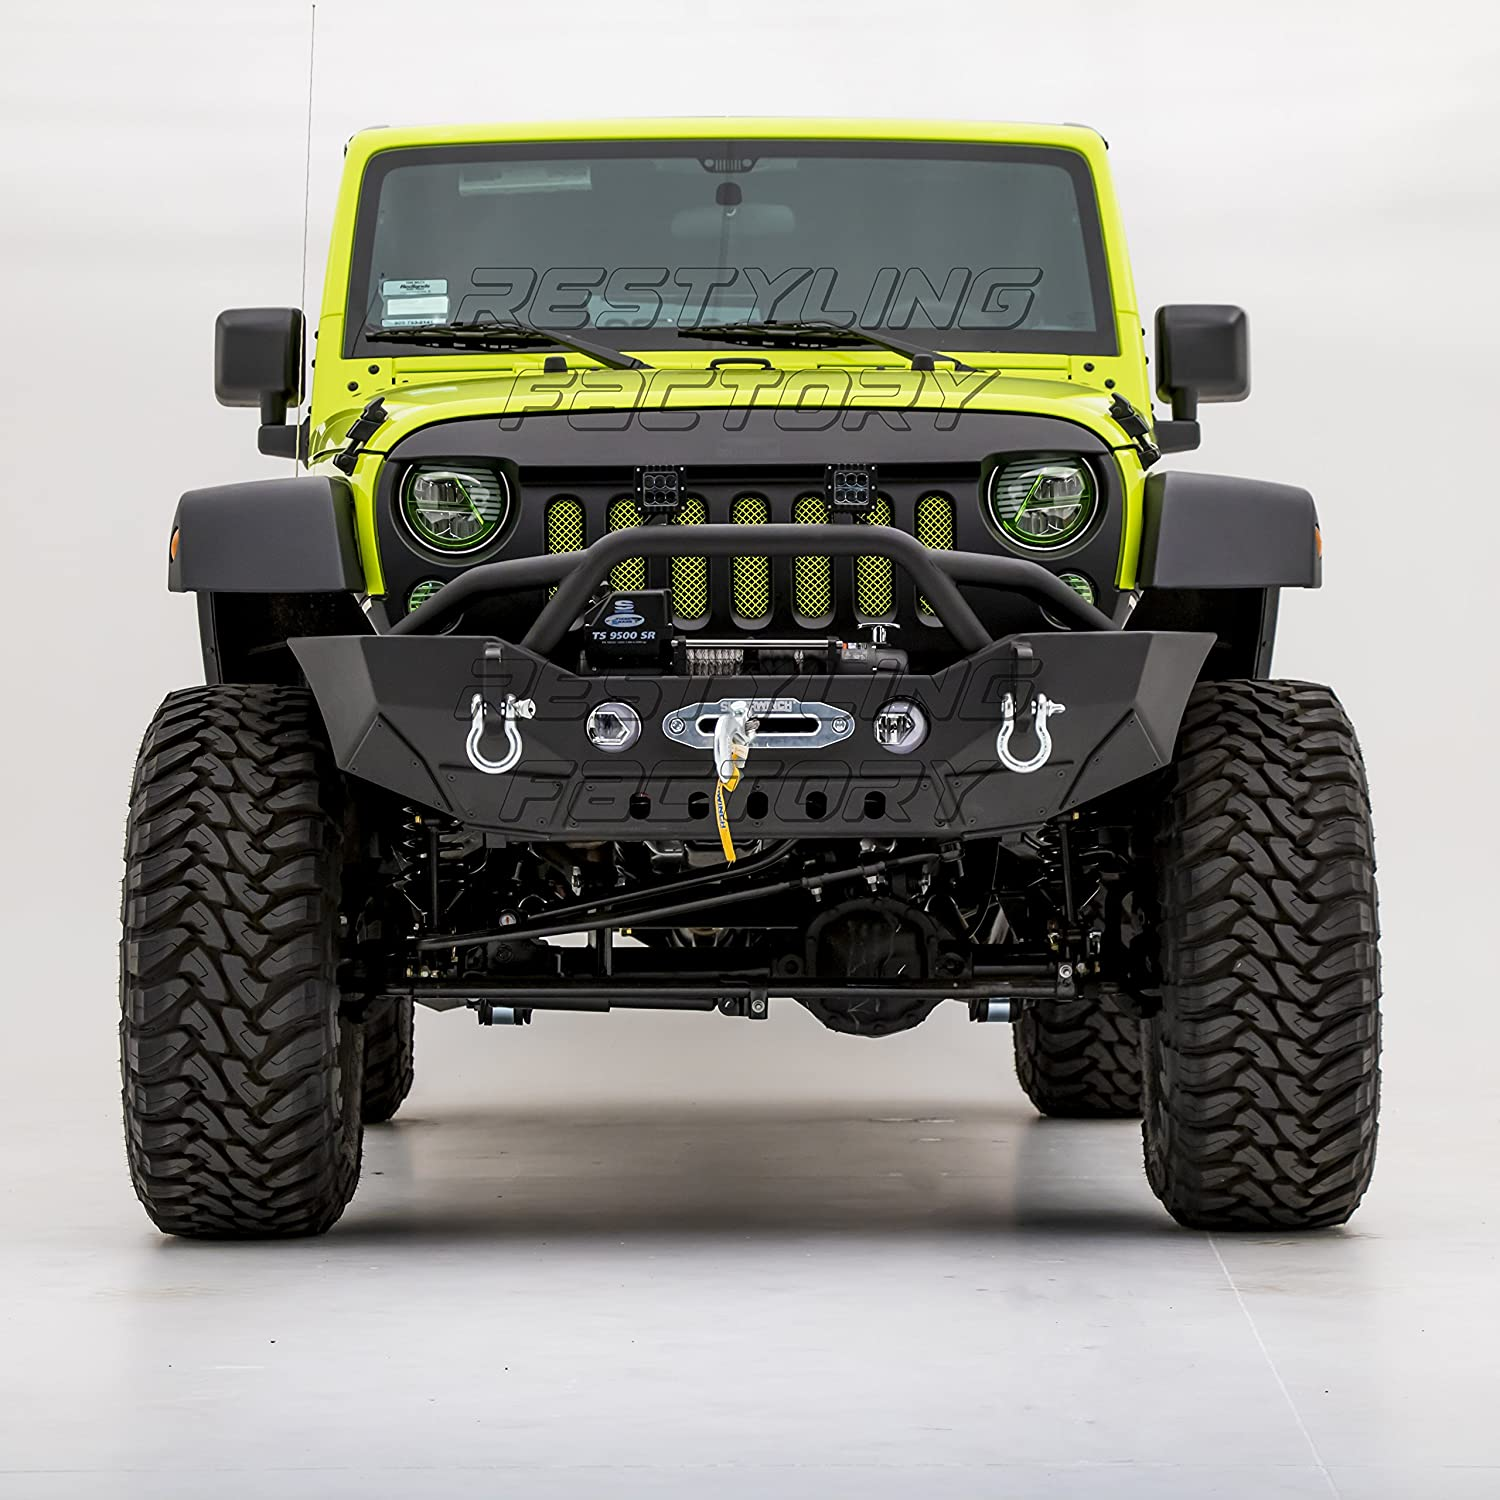 Restyling Factory Rock Crawler Front Bumper With Fog Jeep Wrangler Parts Lights Hole Built In Winch Plate Black Textured For 07 18 Jk Automotive